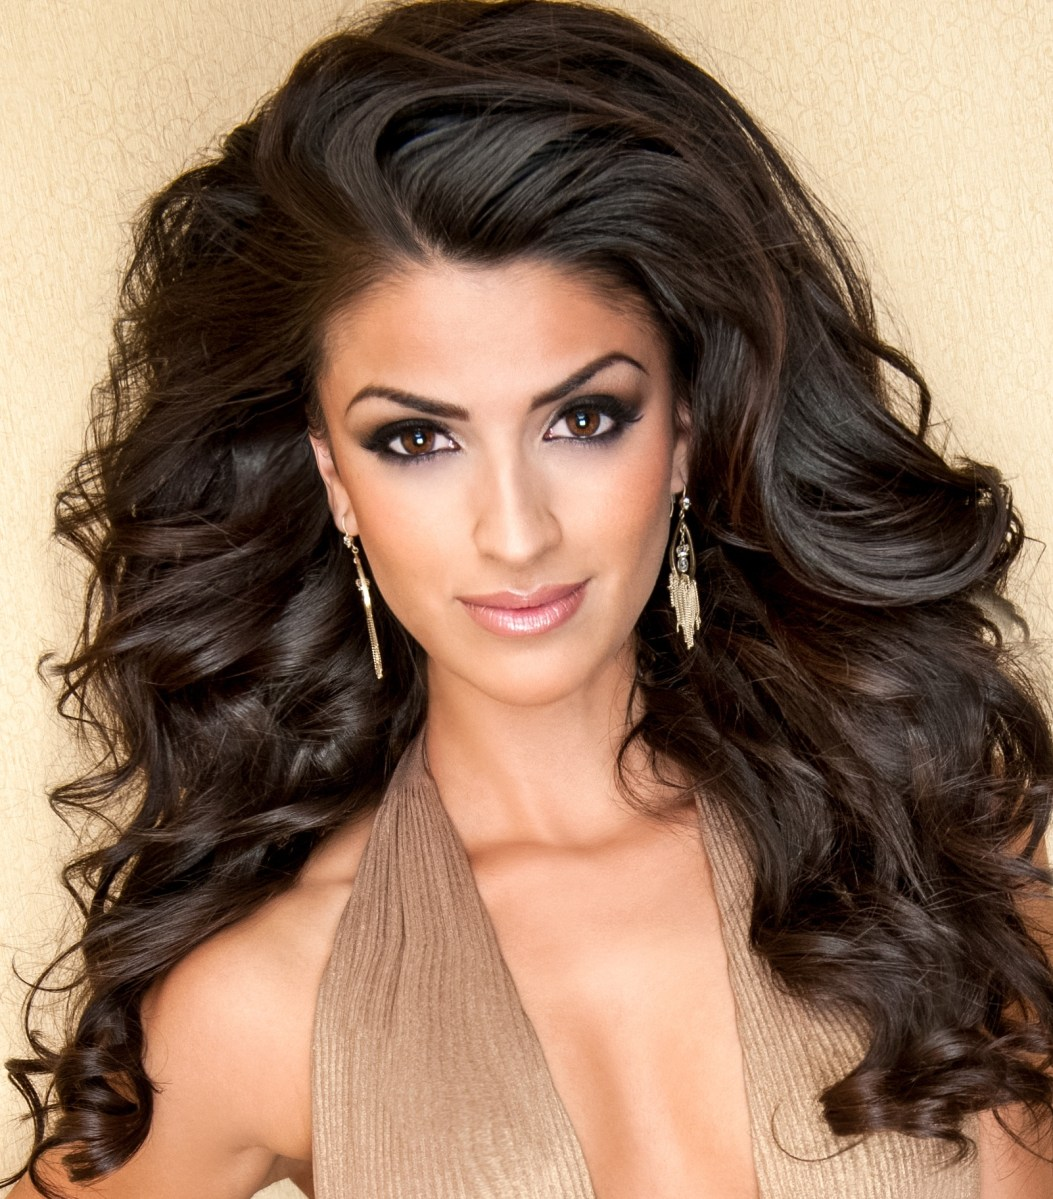 Beauty Of The Month Britaña Campos, Owner Of Savvy